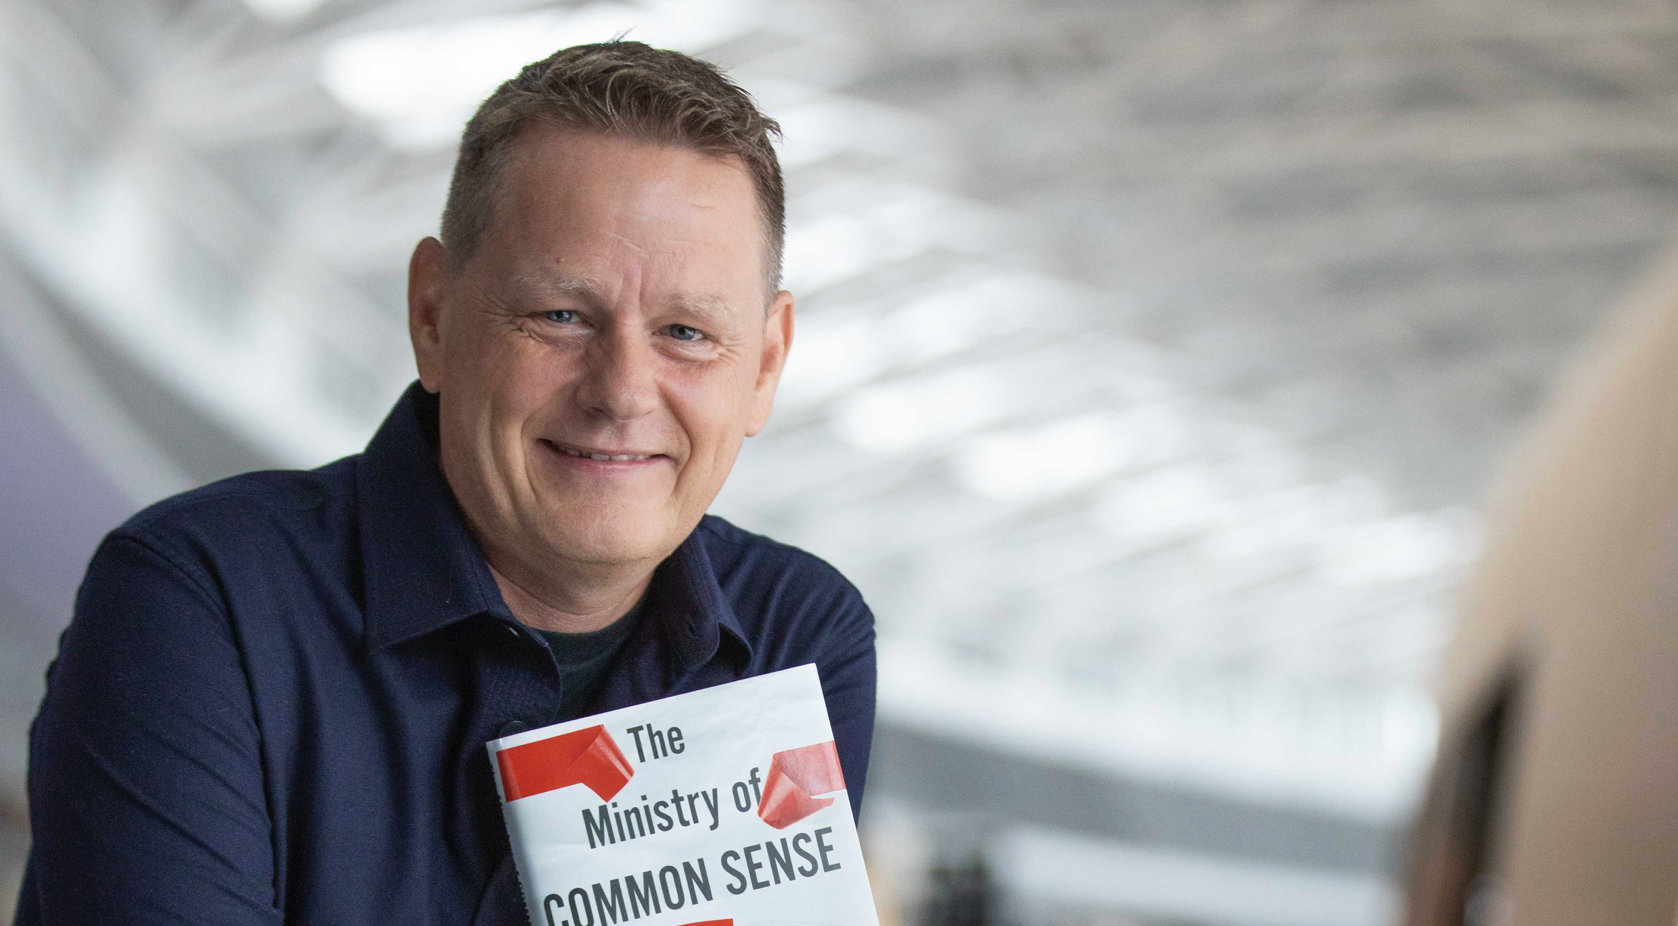 """The Ministry of Common Sense"" – An Interview with Martin Lindstrom"